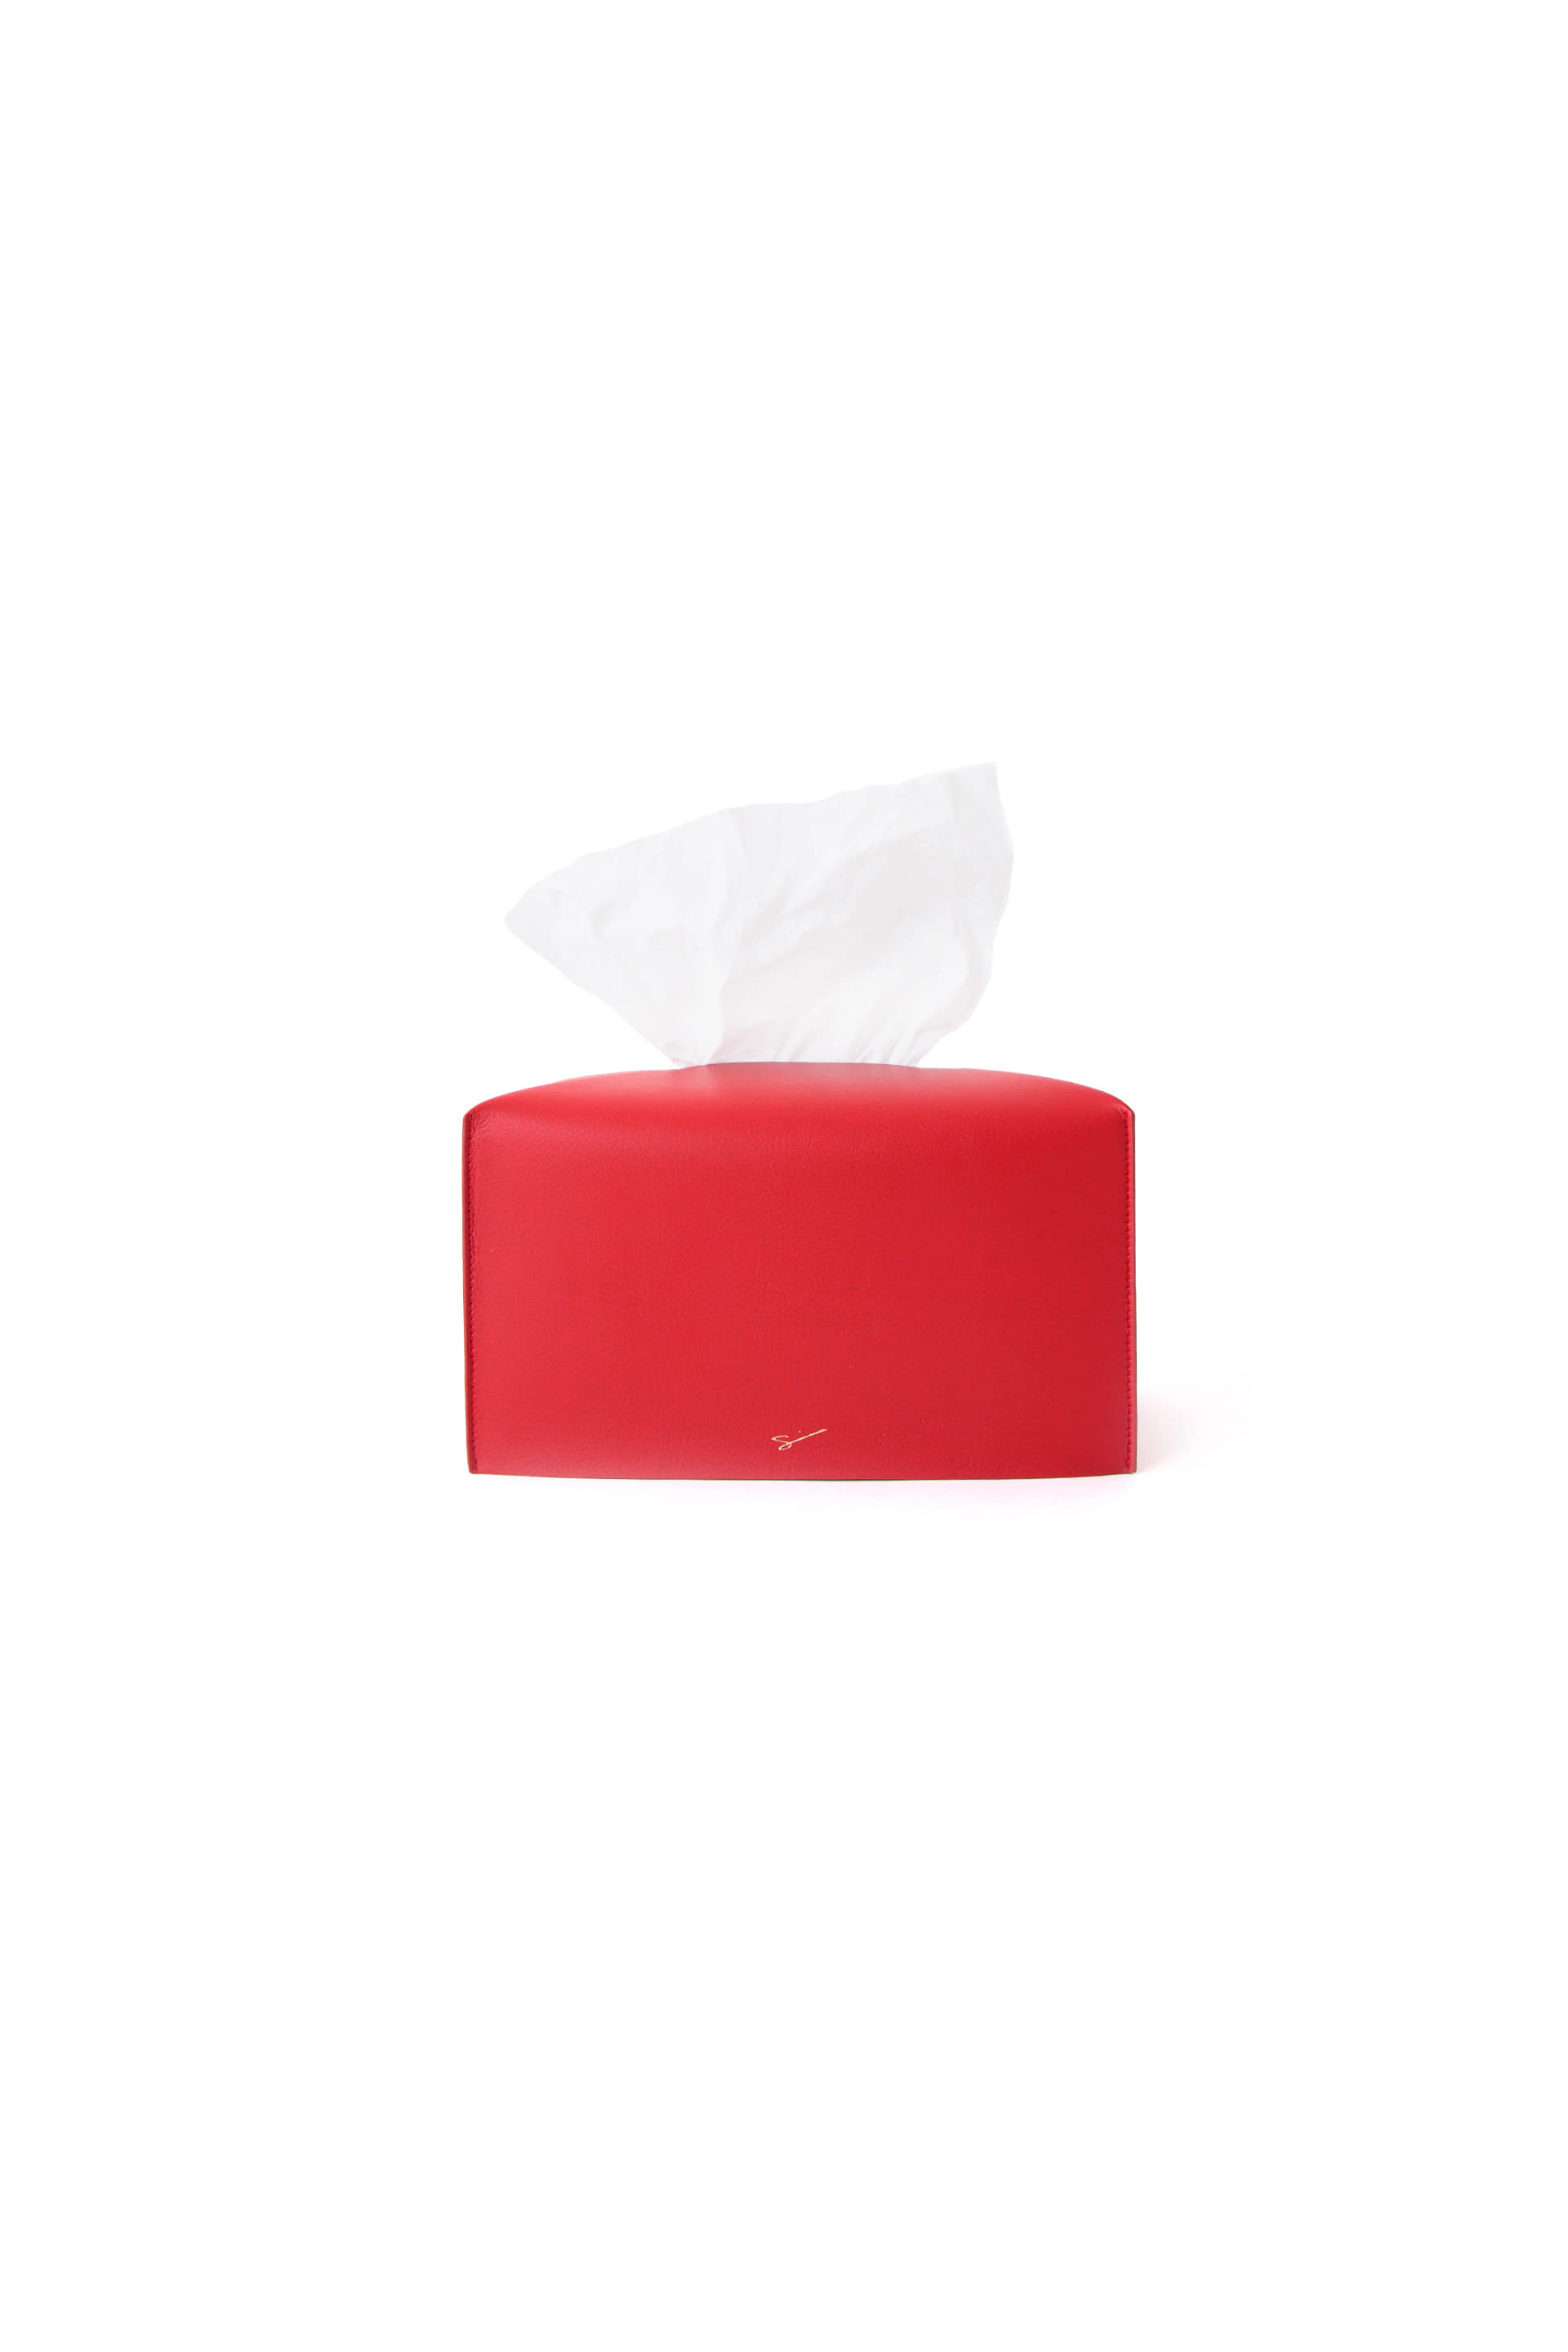 TISSUE CASE L 06 Red